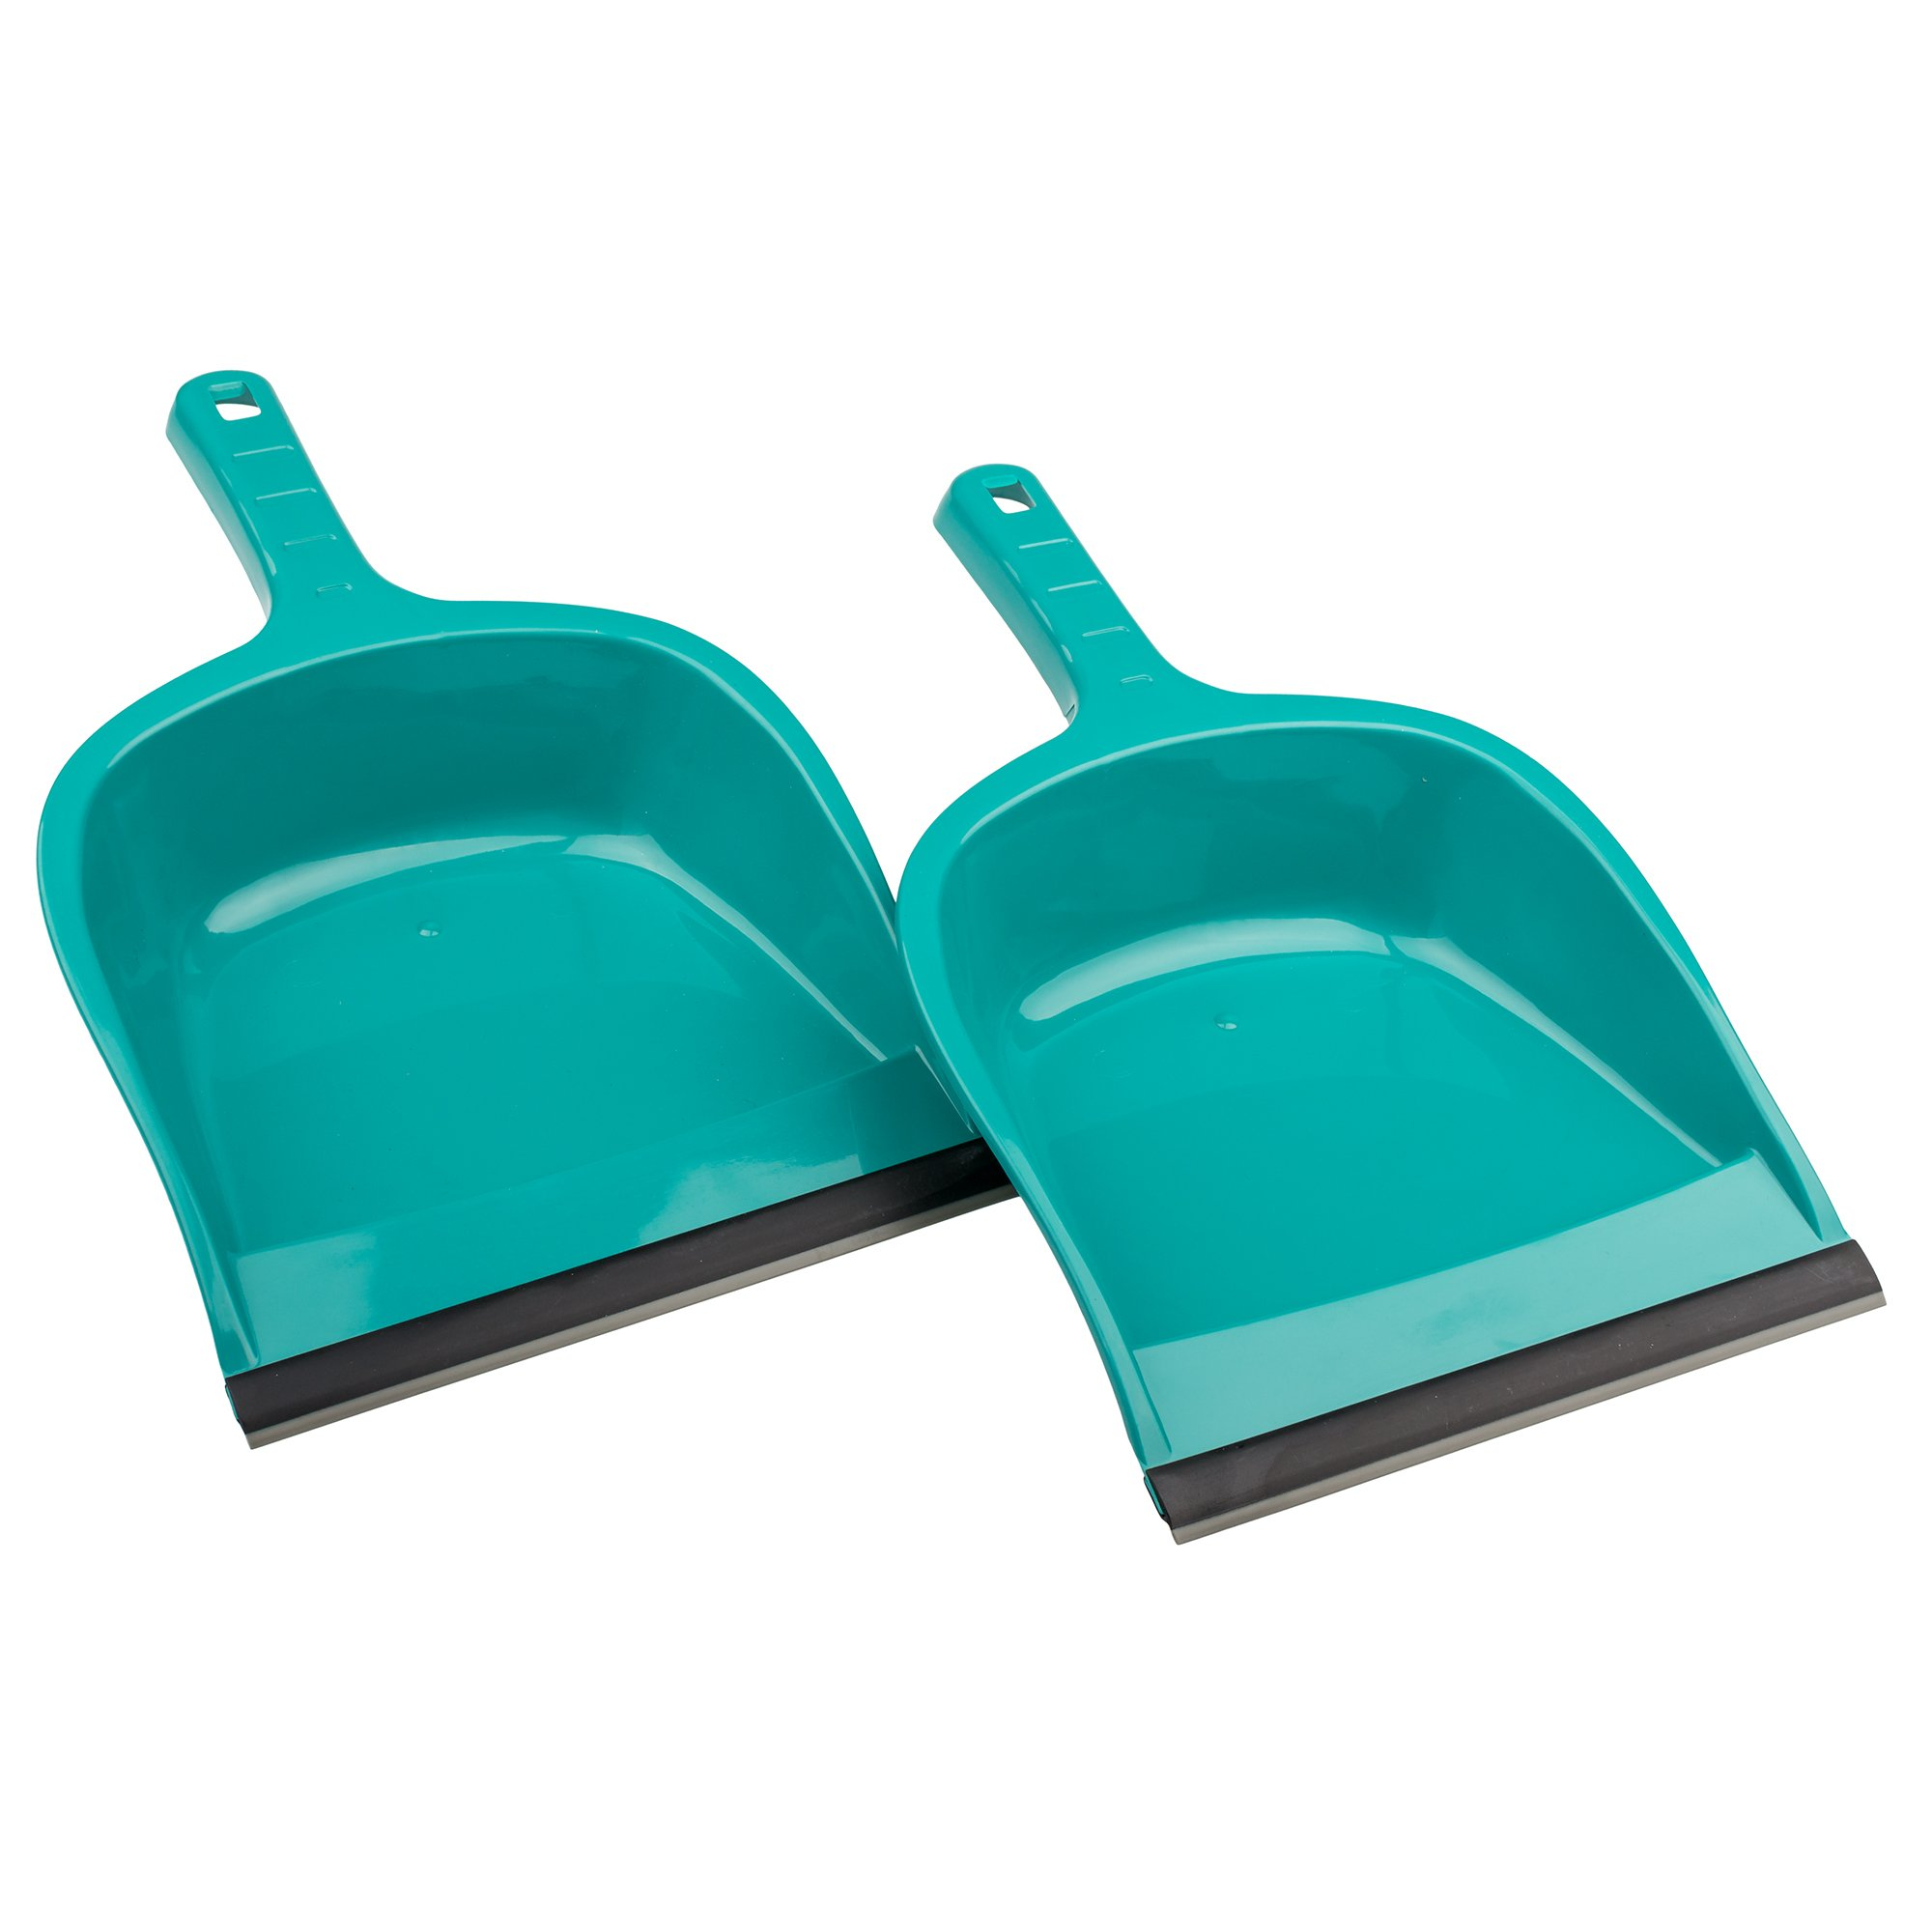 Plastic dust pan, Large dust pan, Heavy duty dust pan (pack of 2)